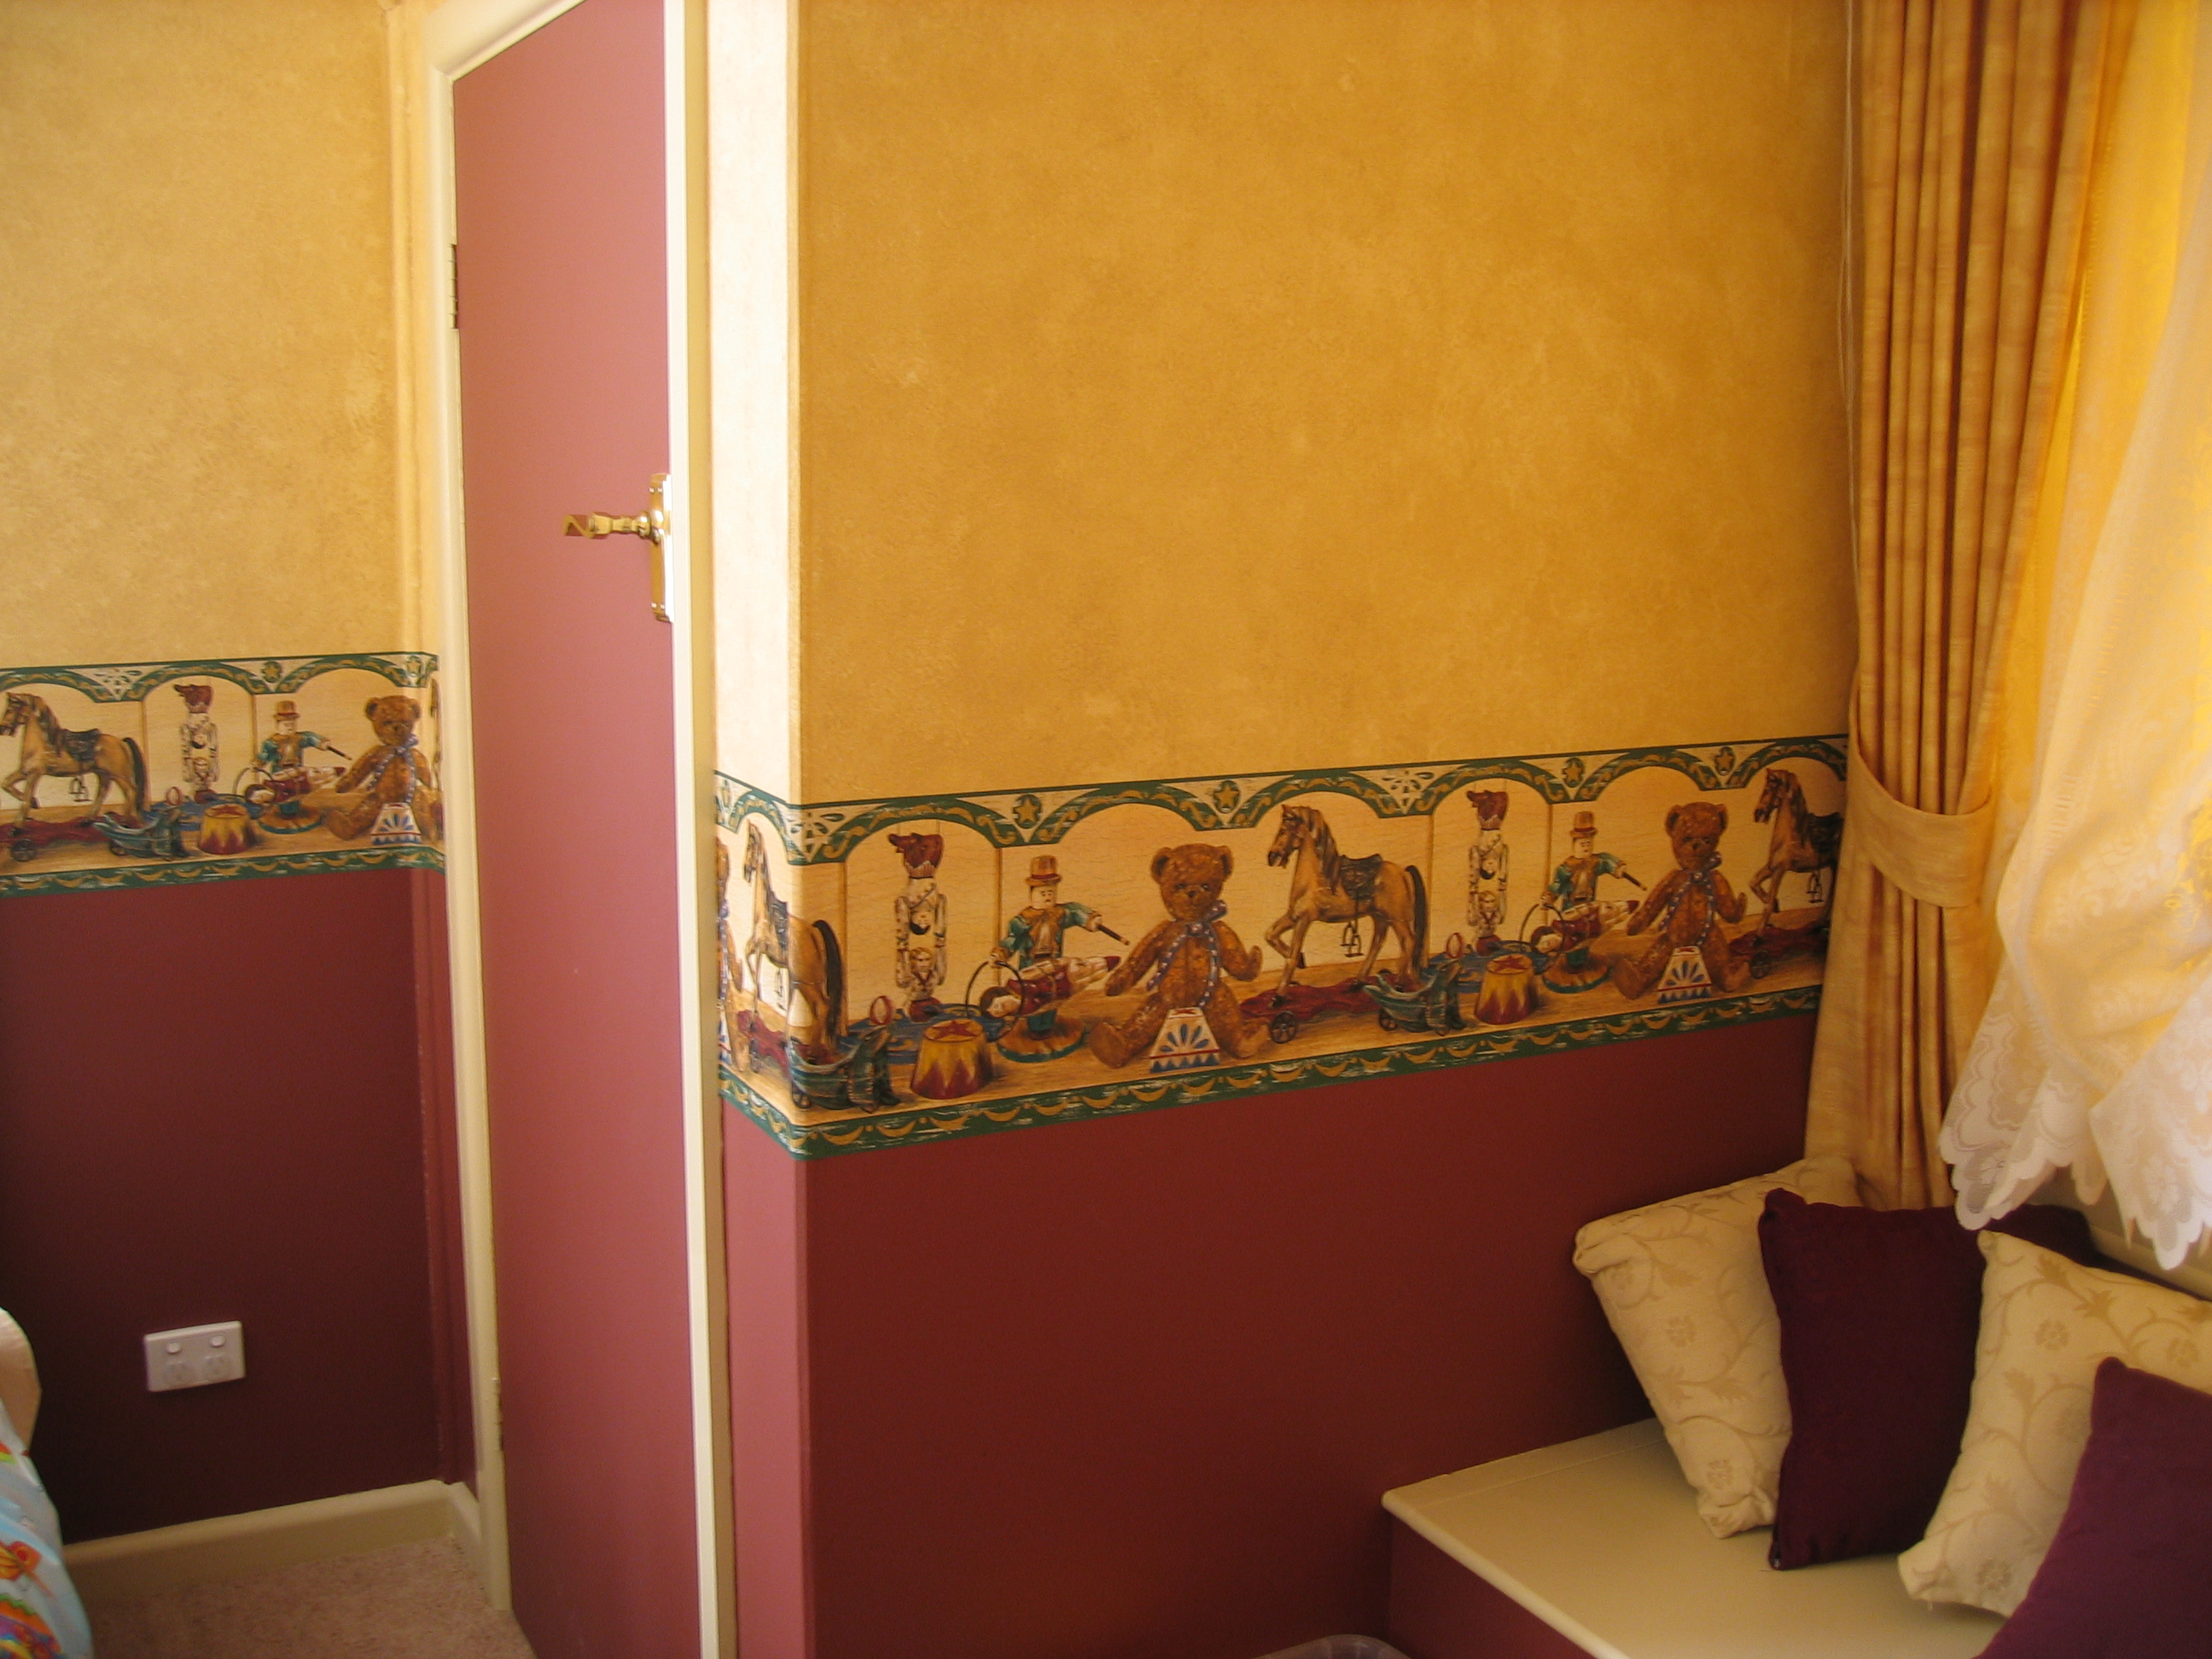 Wallpaper frieze & sponge painting